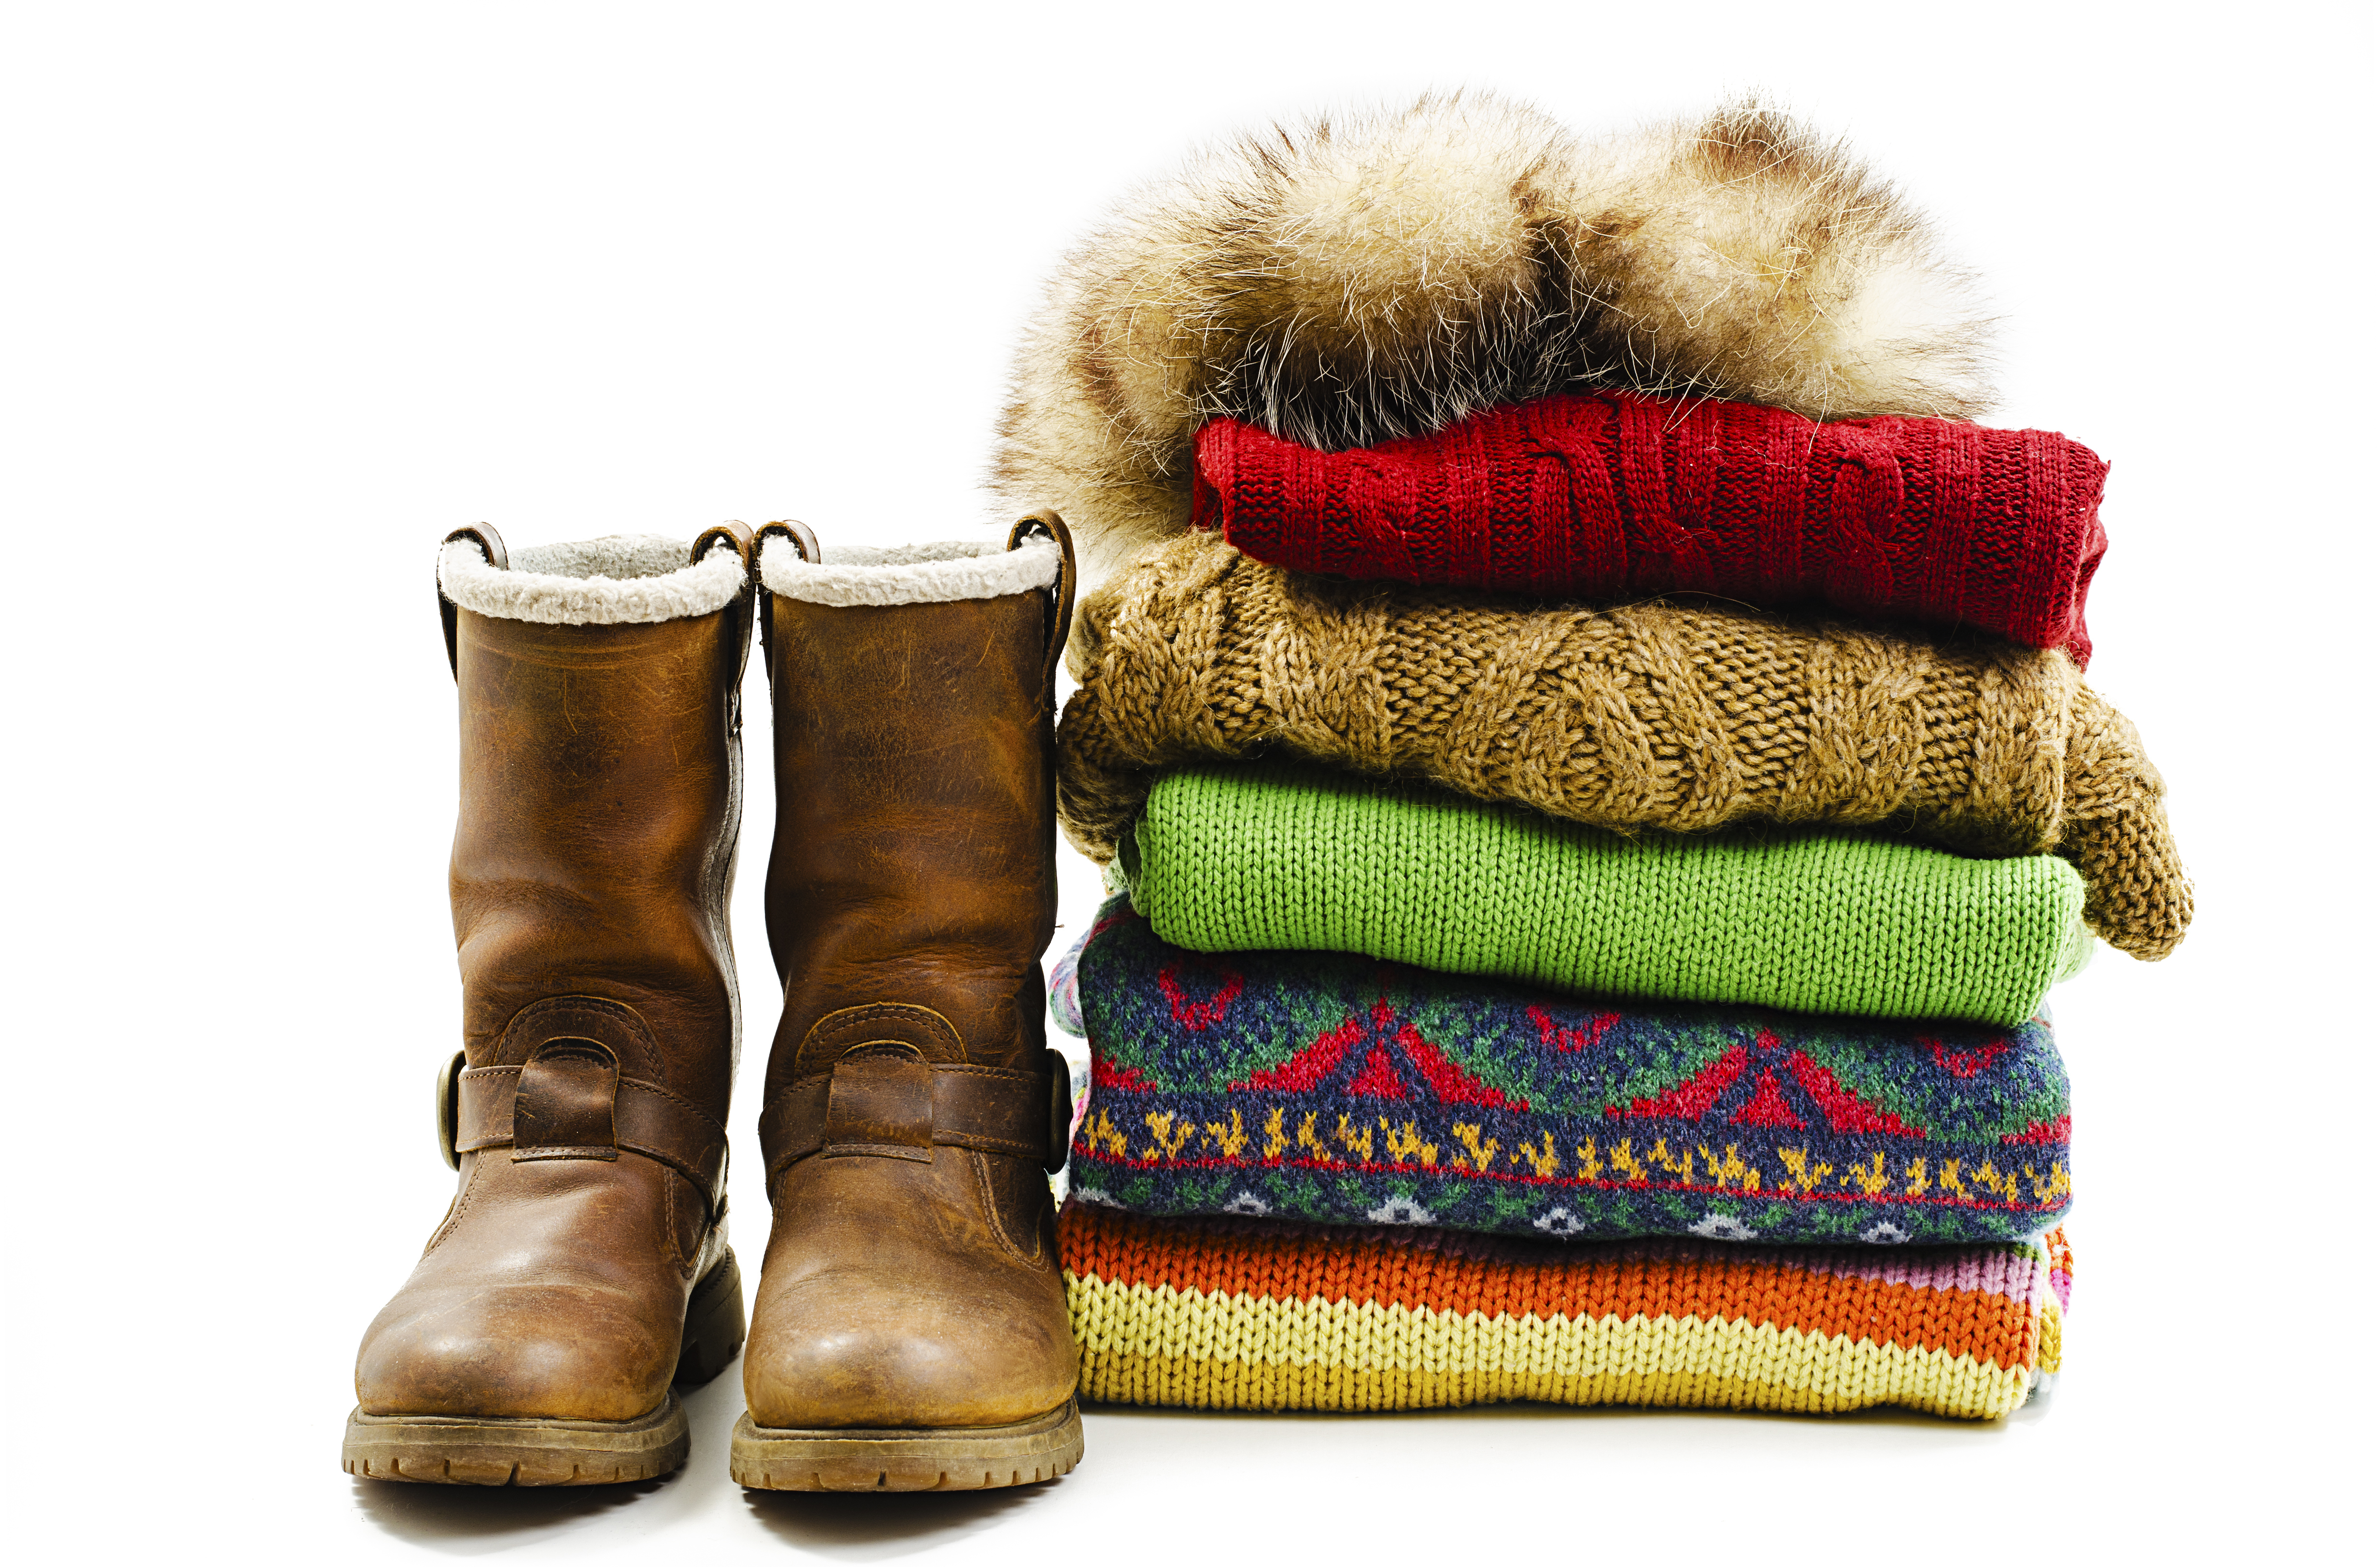 5 ways to stay healthy in winter